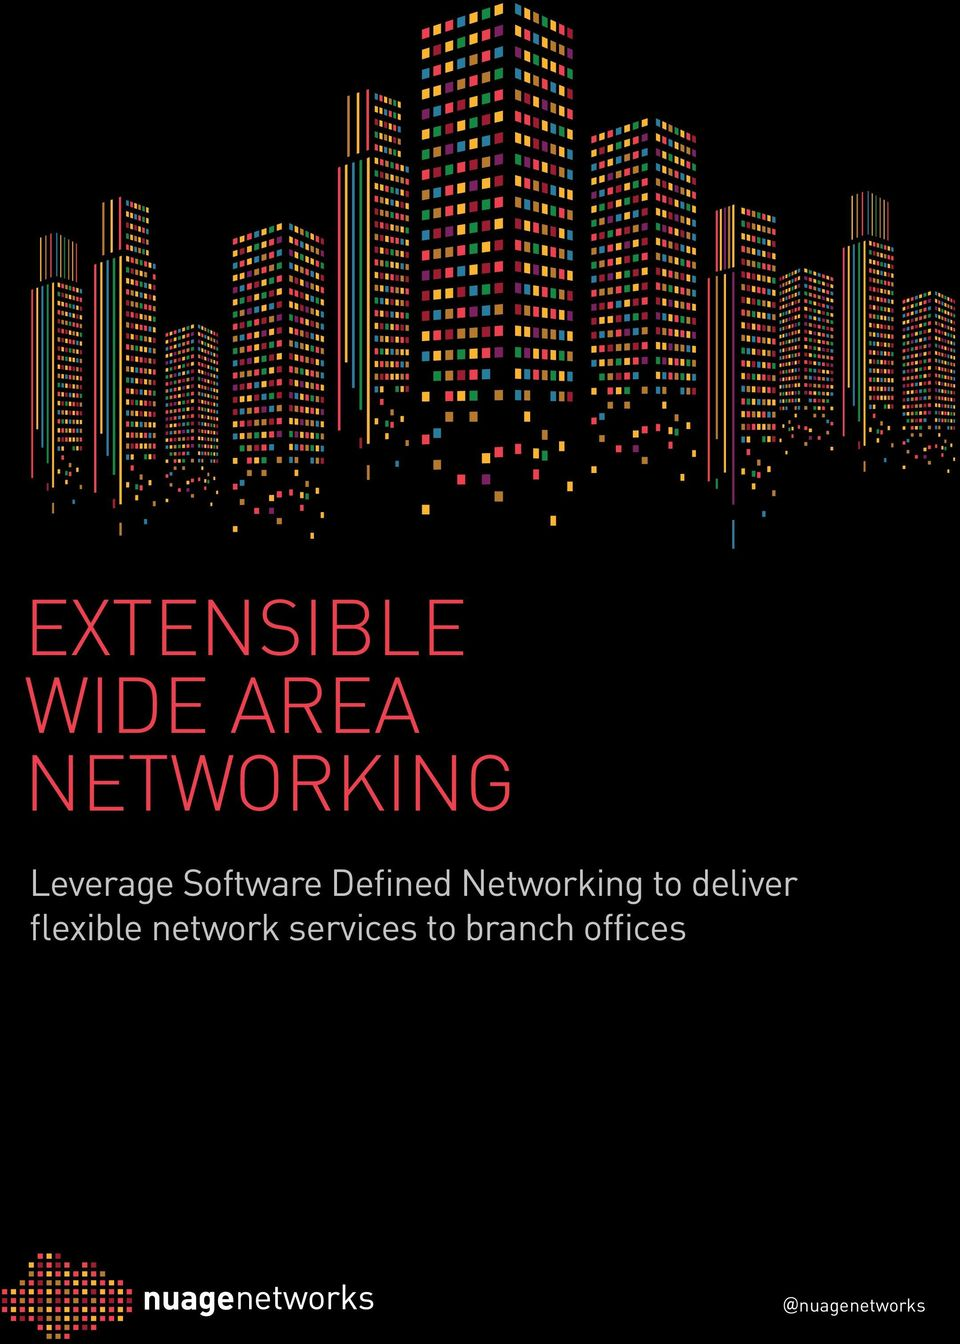 Networking to deliver flexible